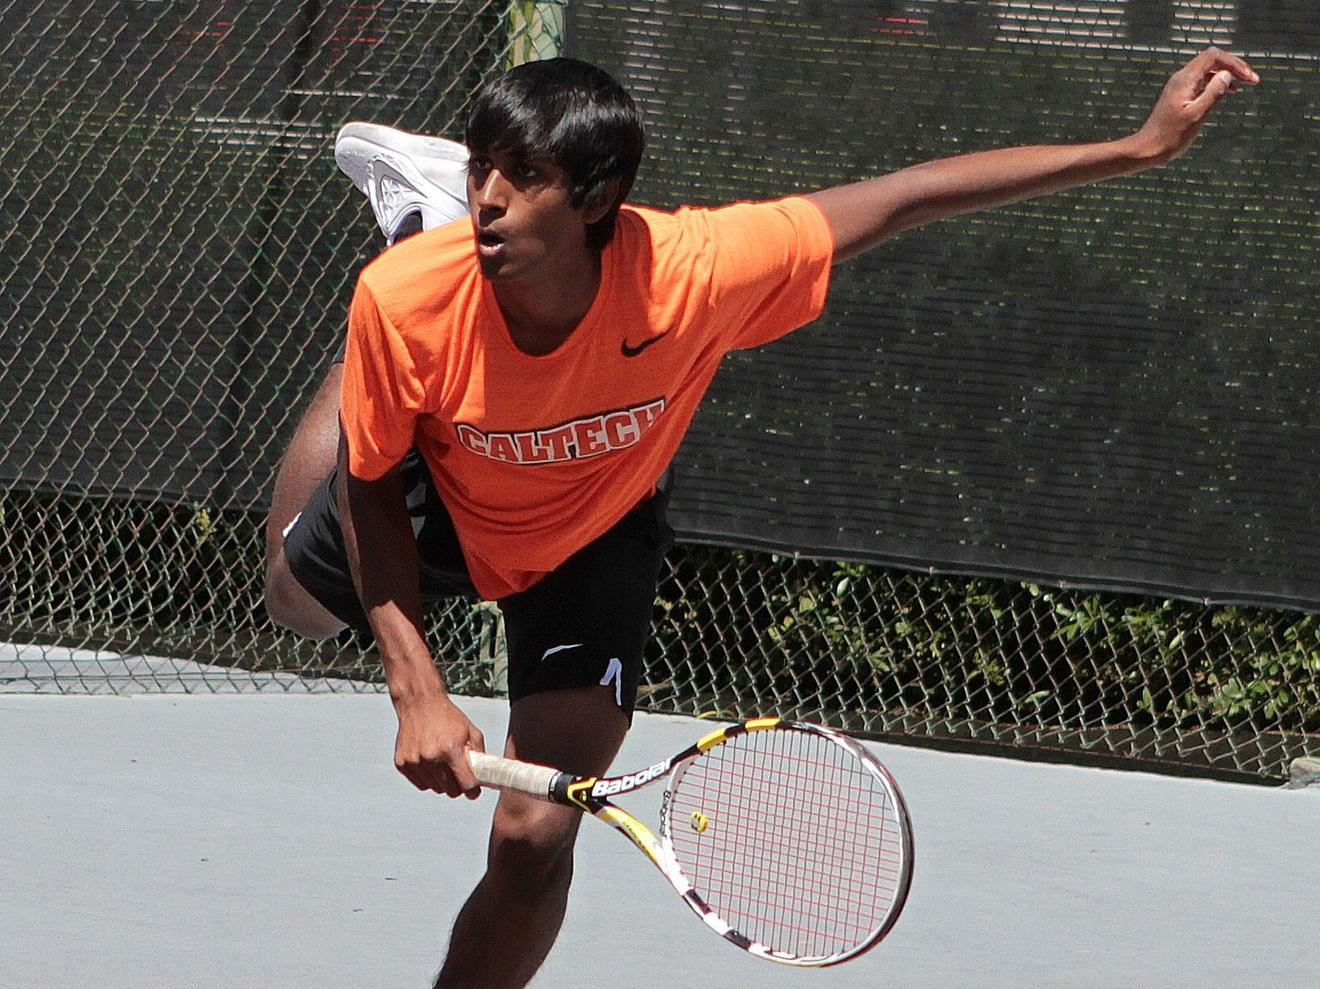 Vasireddy Among Winners in Whitworth Rout